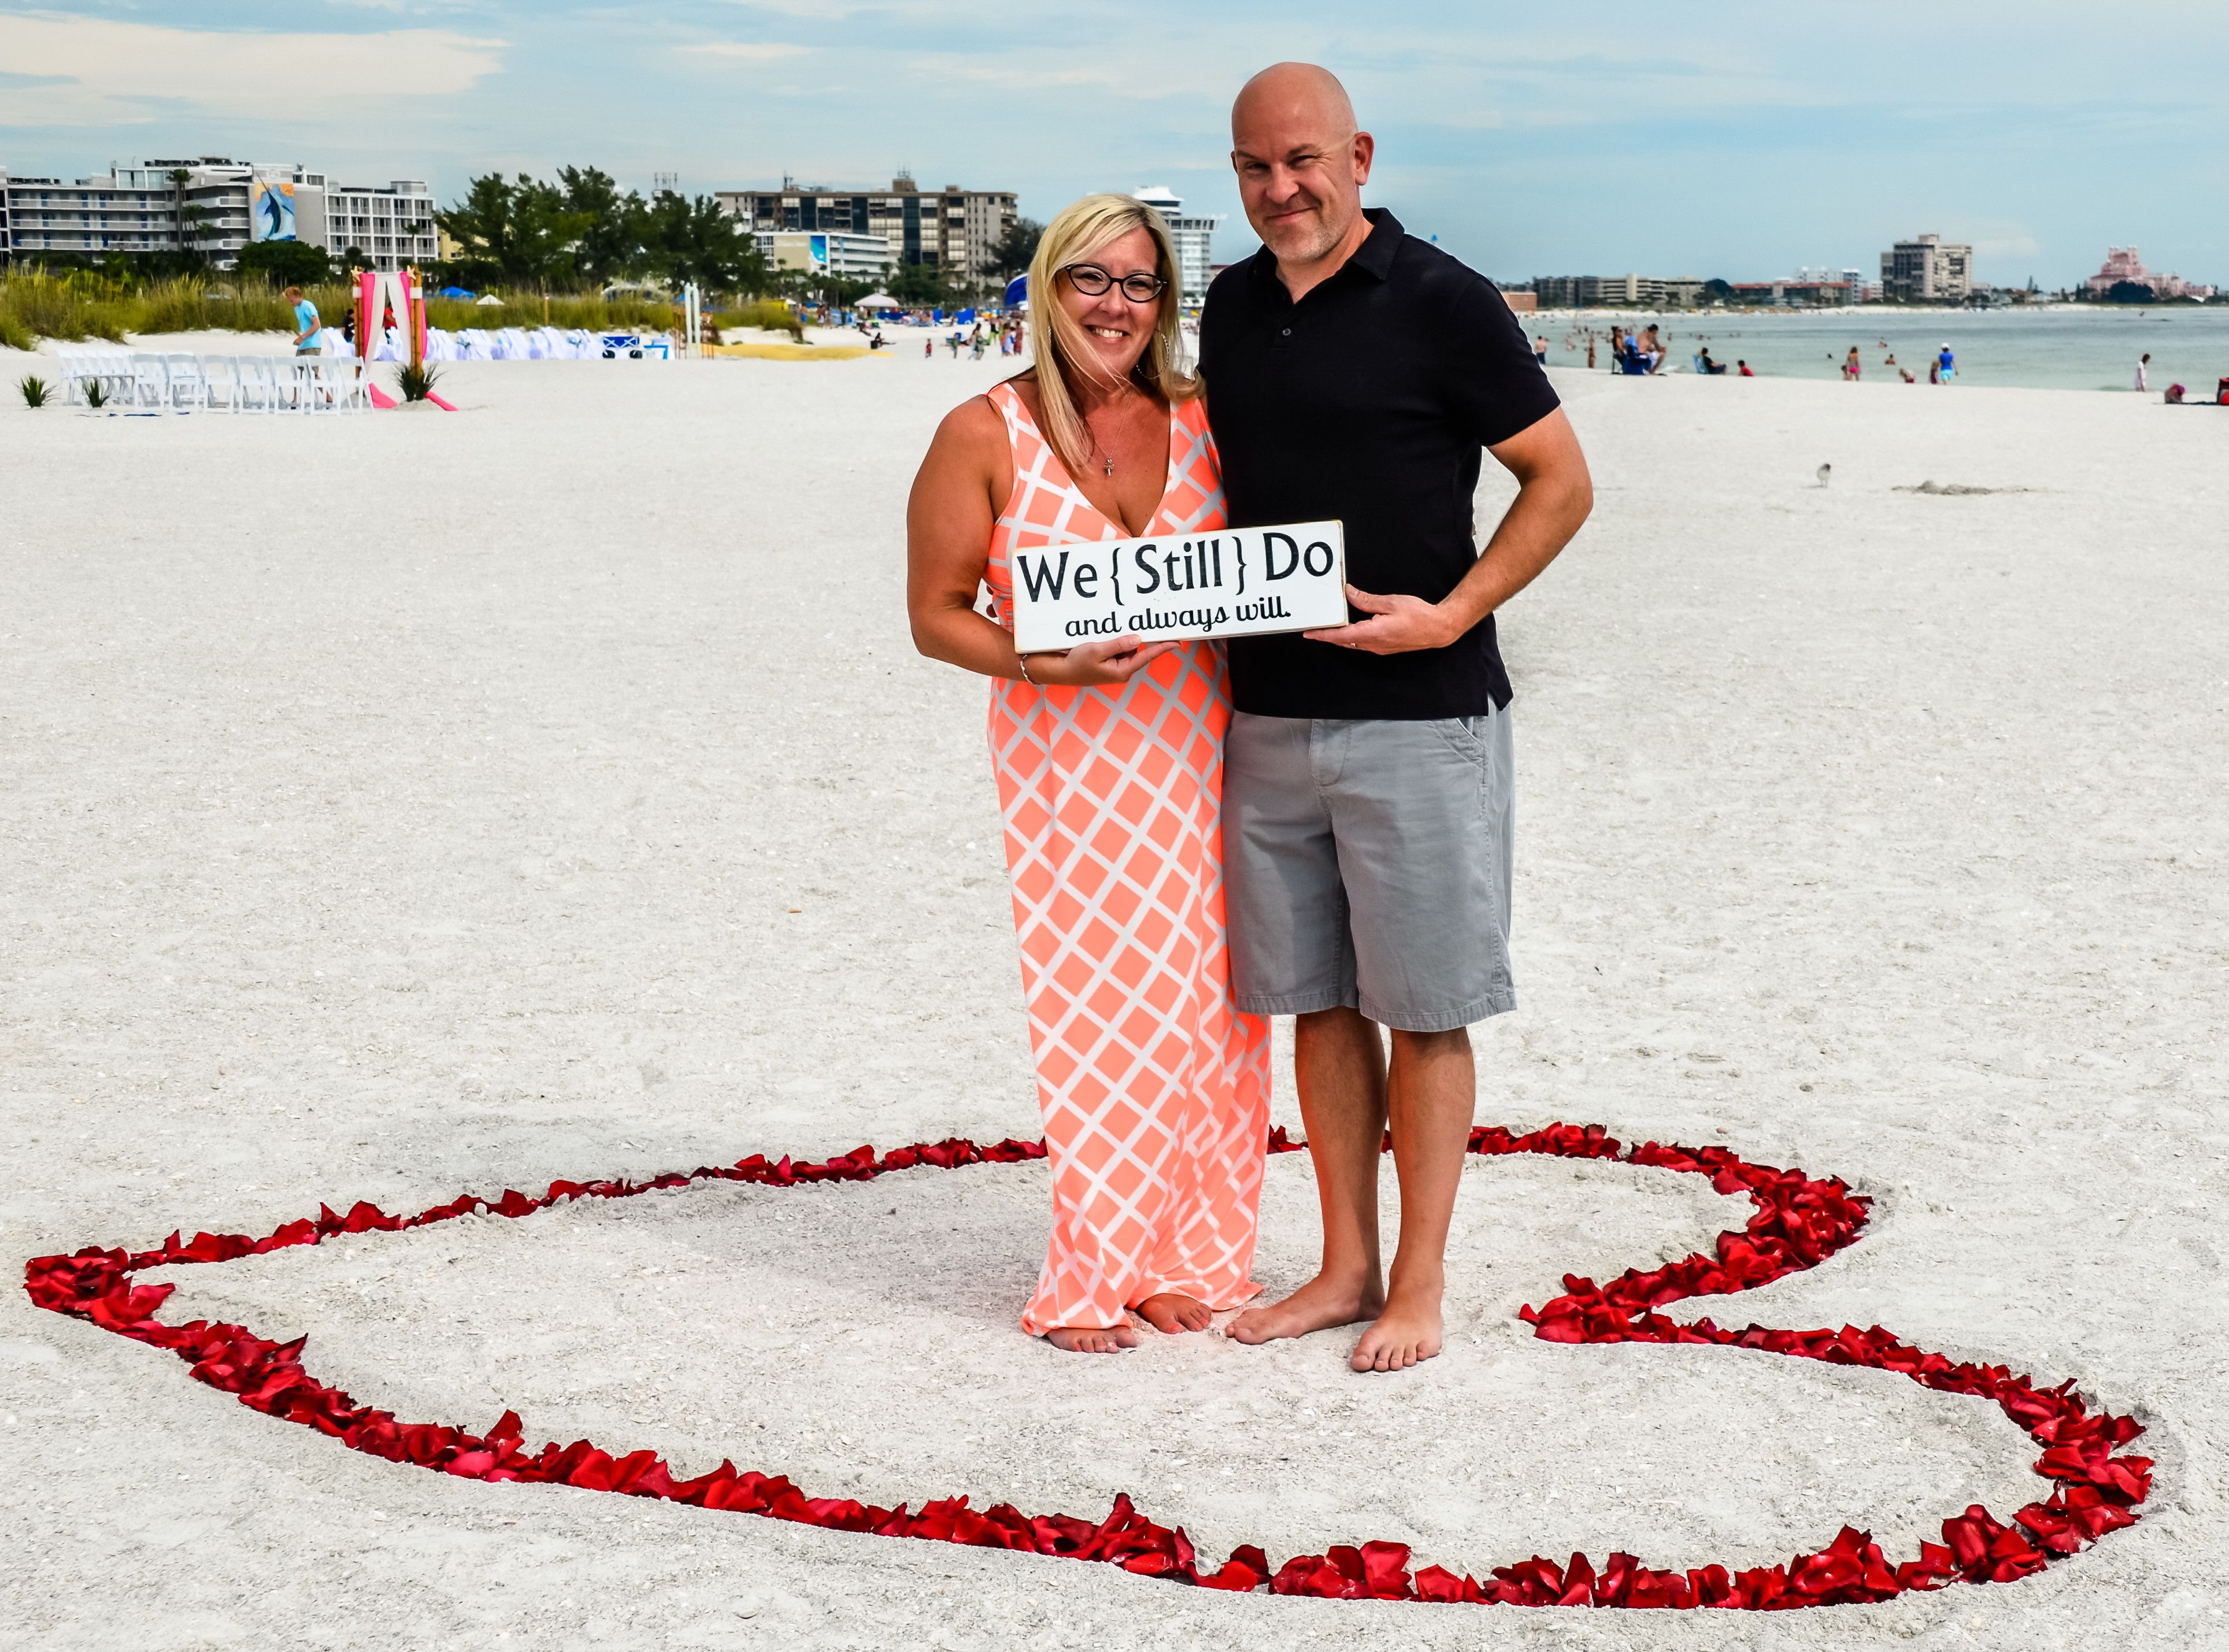 Beach Vow Renewal Ceremony: Vow Renewal Ceremony In Tampa & Clearwater